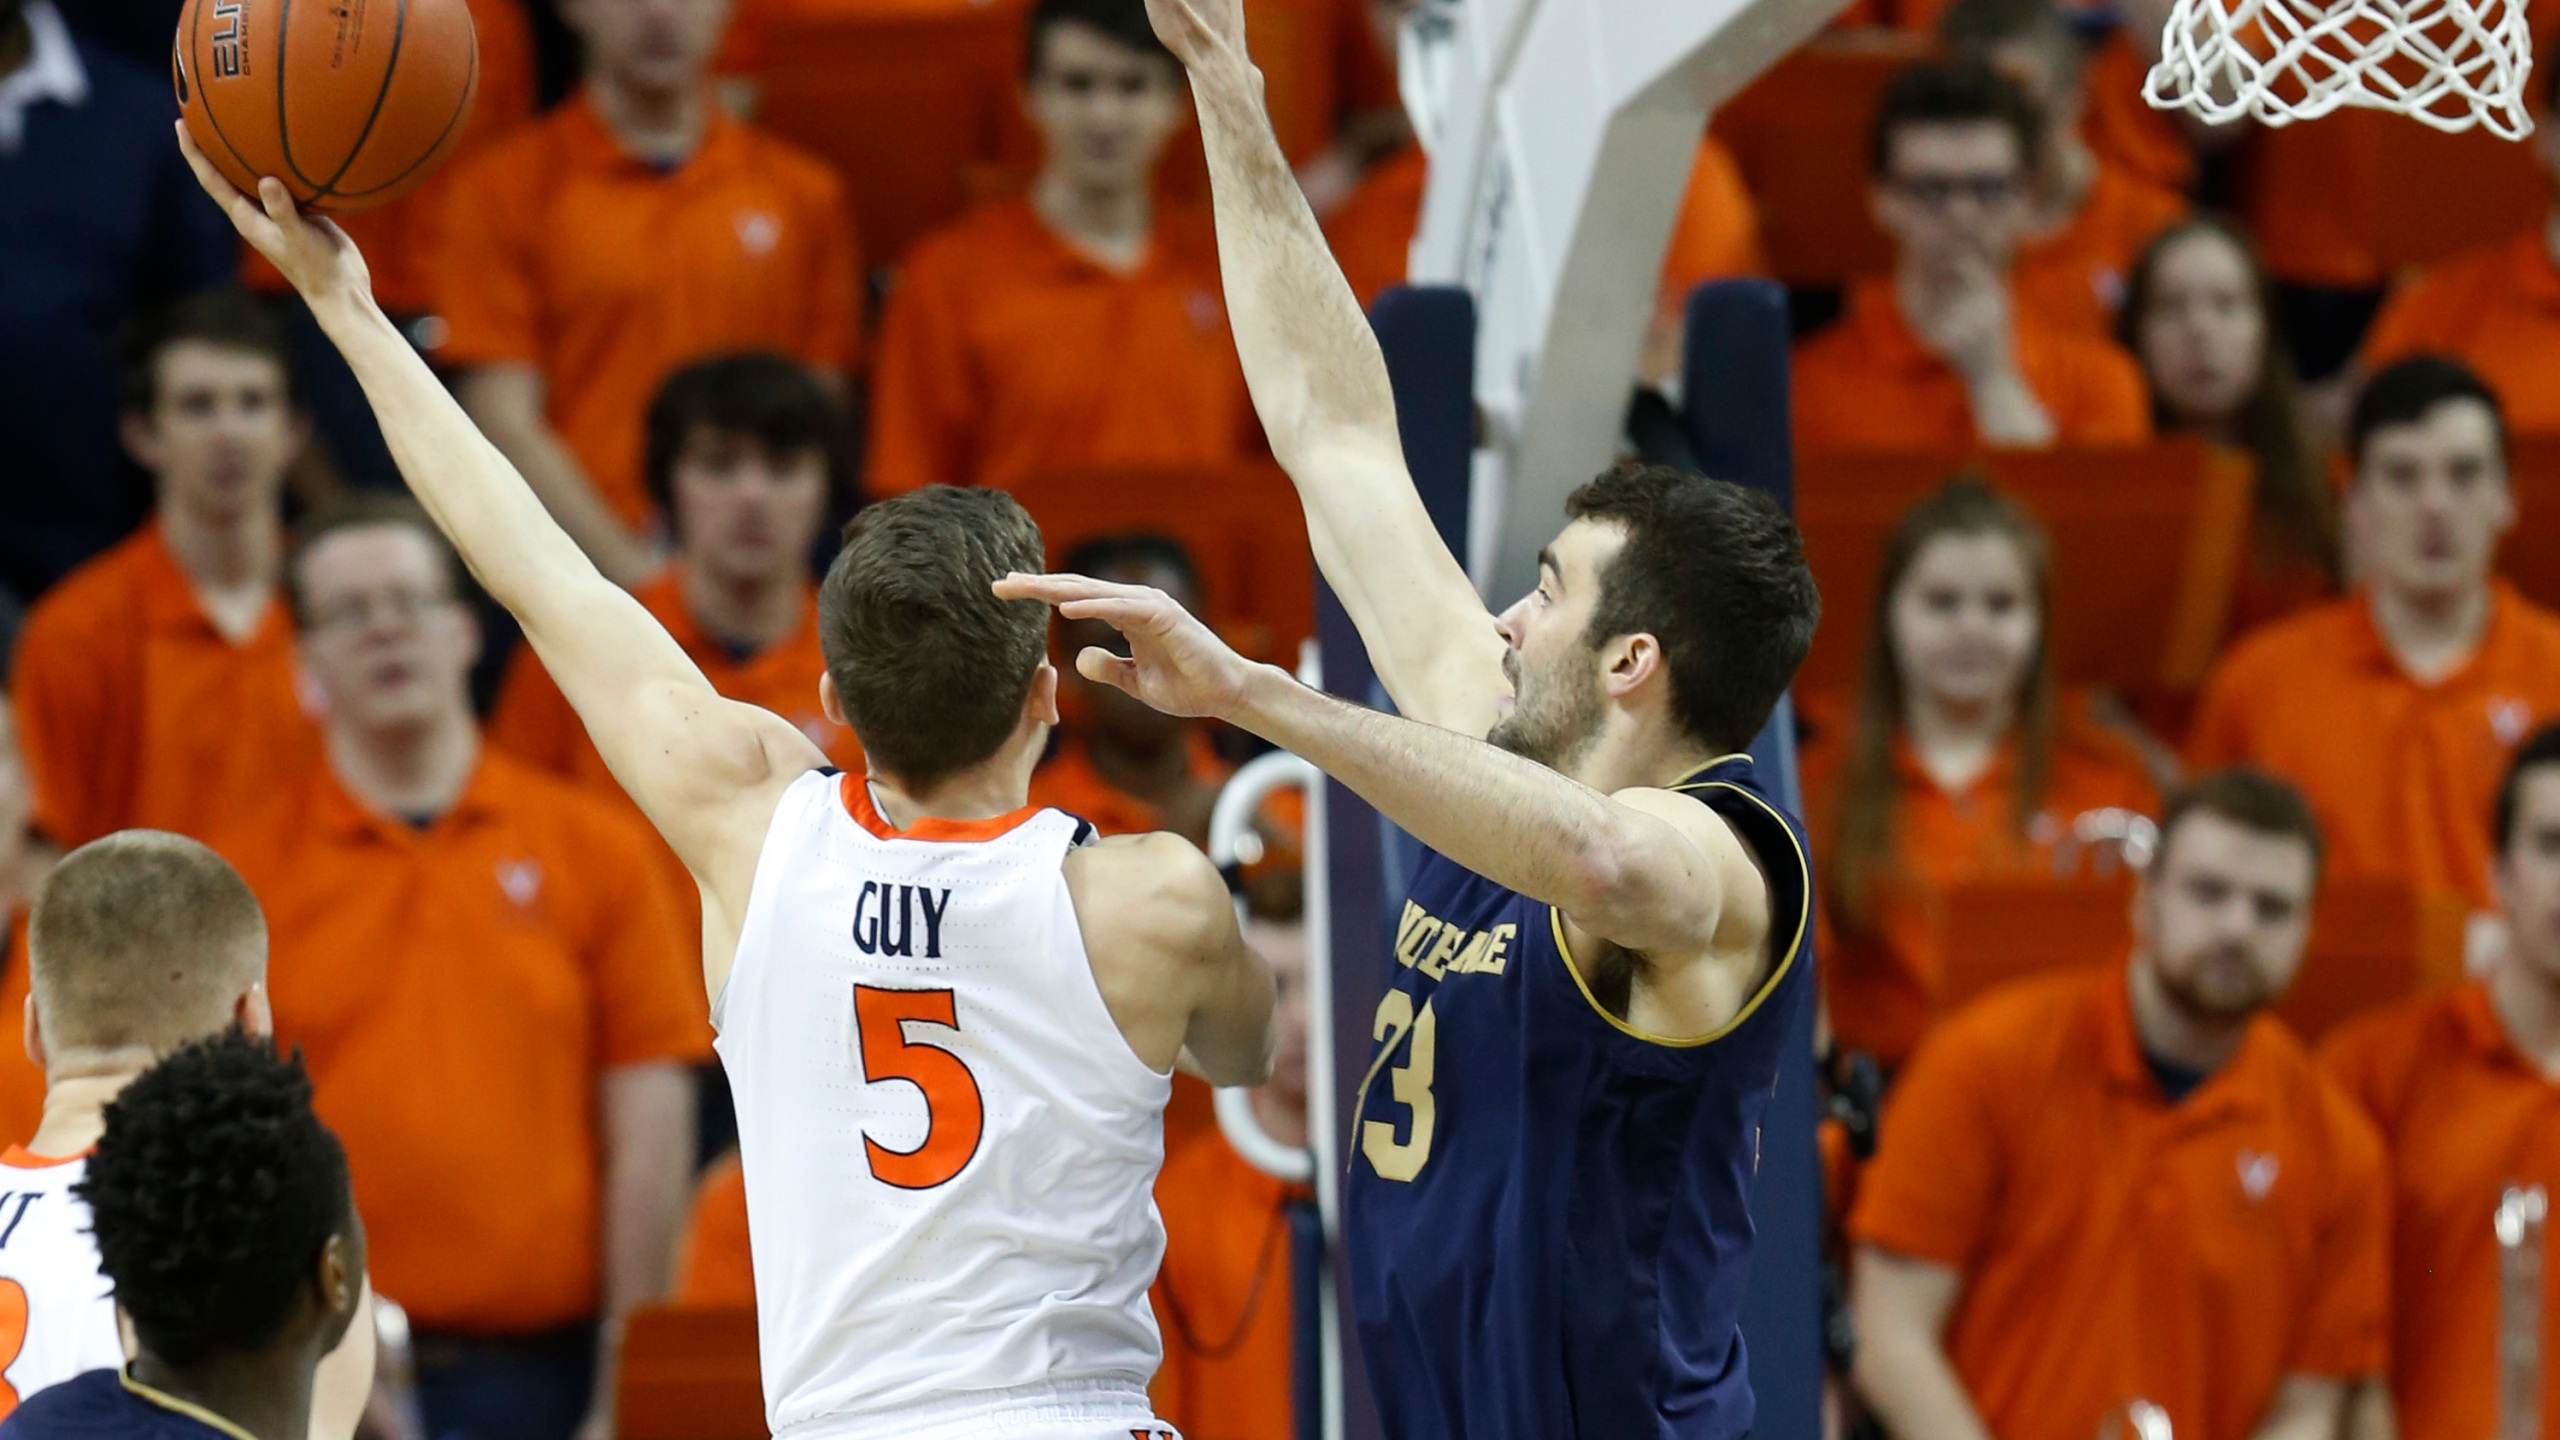 Notre_Dame_Virginia_Basketball_99929-159532.jpg12640172